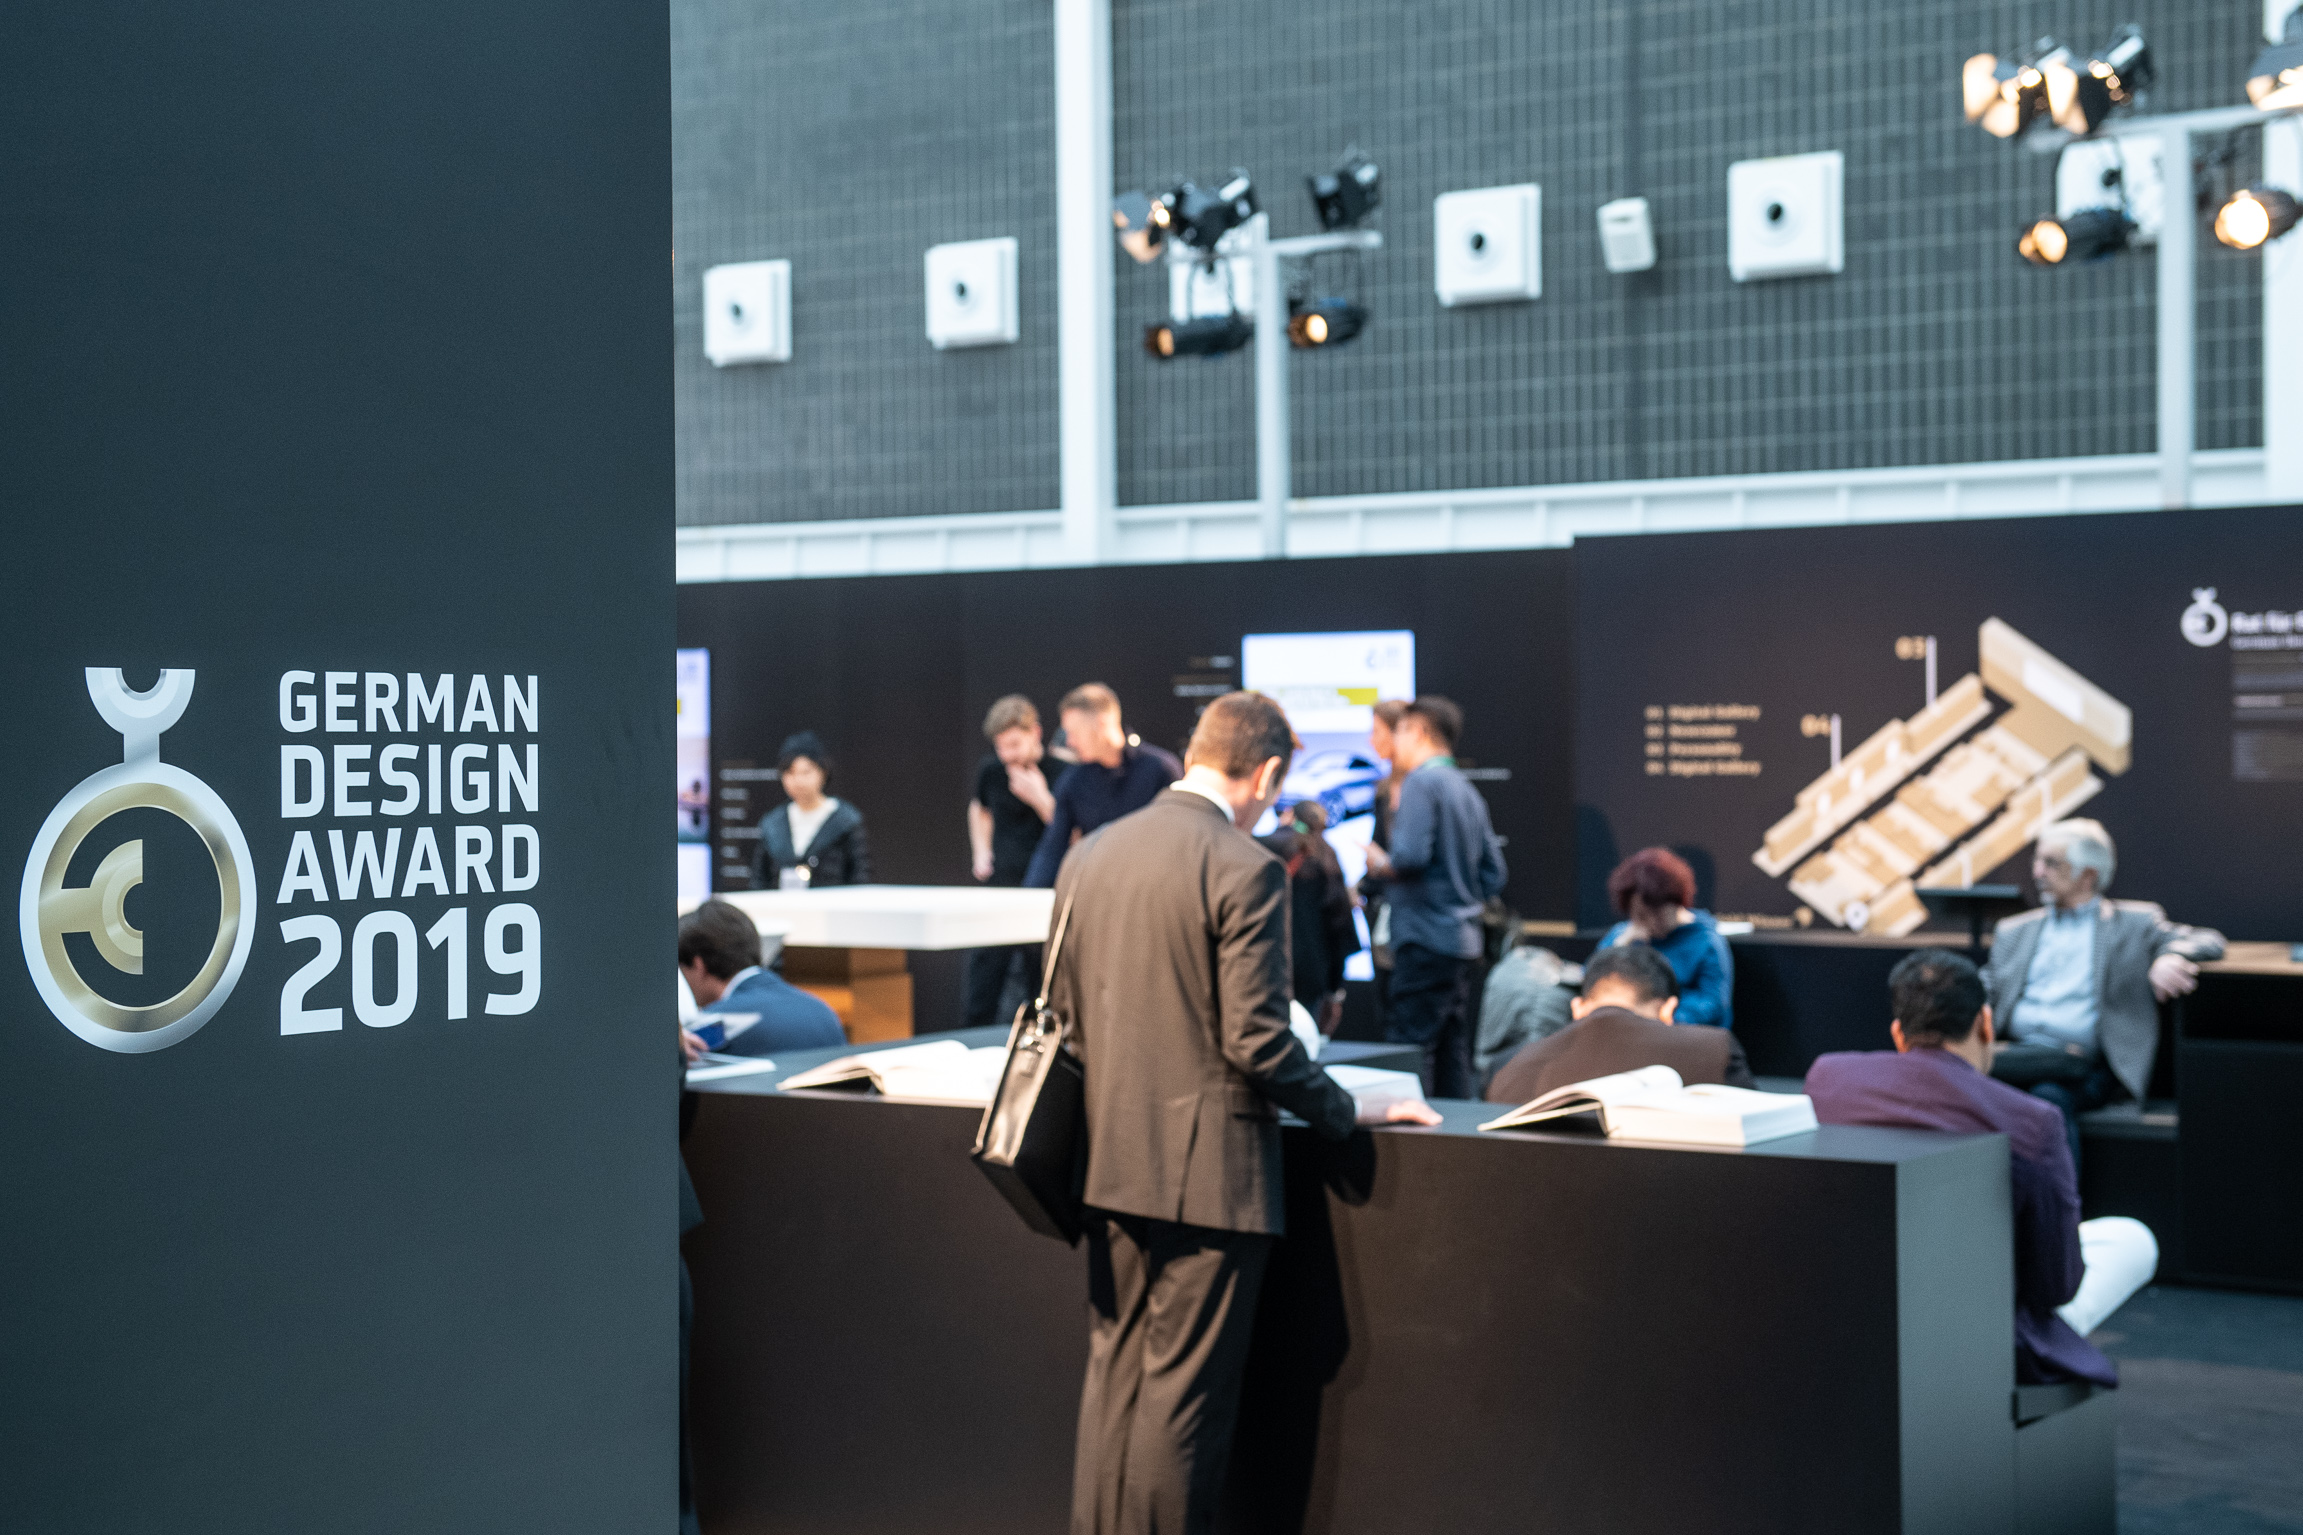 Ambiente - German Design Award 2019